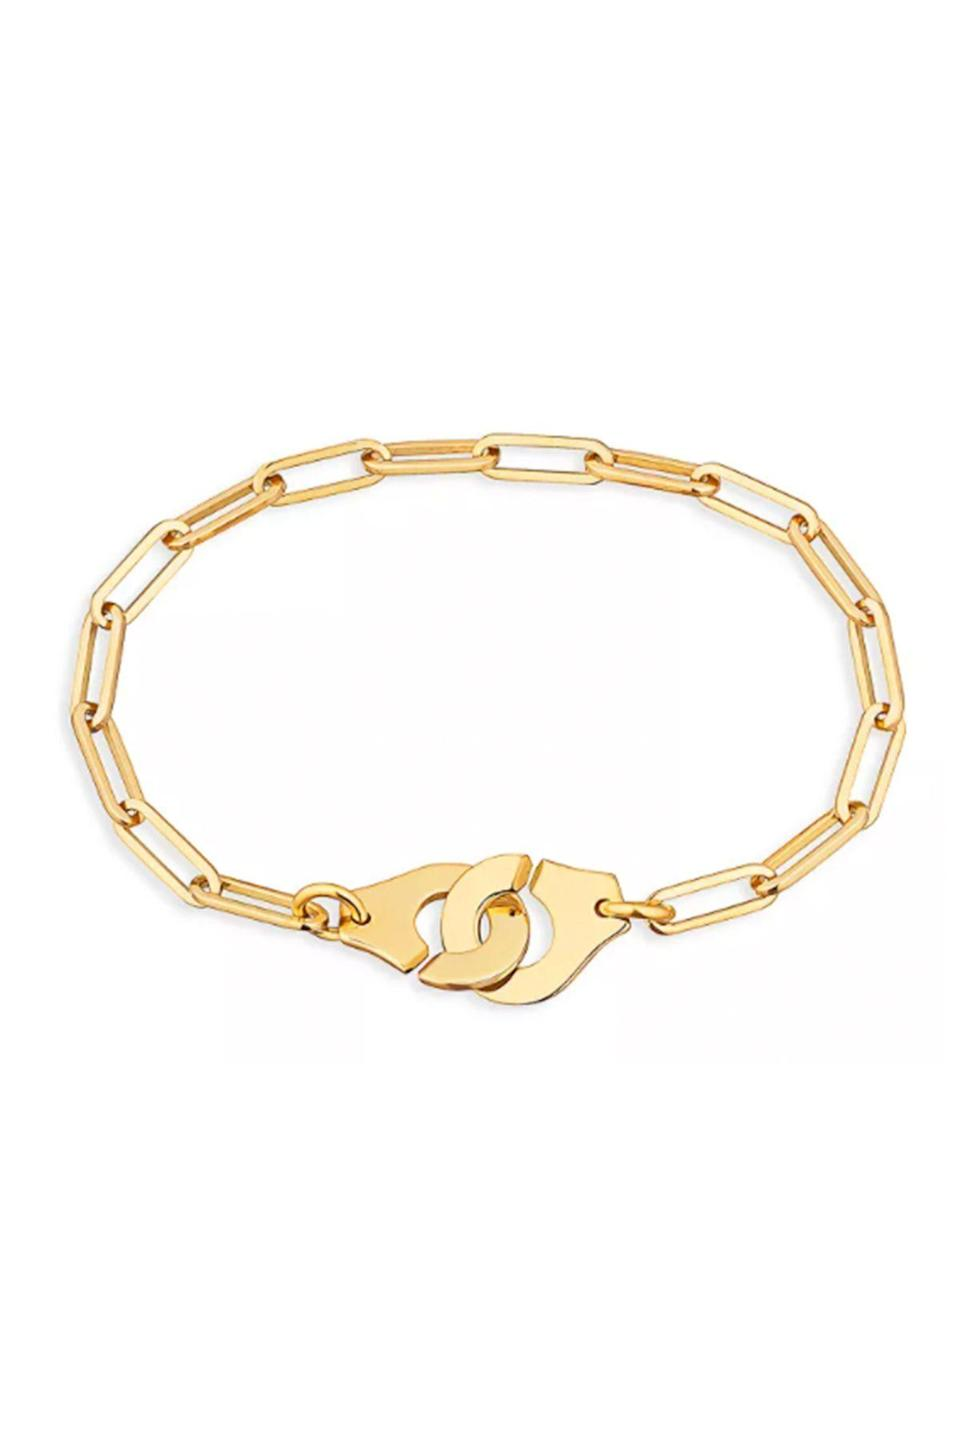 """<p><strong>Dinh Van</strong></p><p>bloomingdales.com</p><p><strong>$2460.00</strong></p><p><a href=""""https://go.redirectingat.com?id=74968X1596630&url=https%3A%2F%2Fwww.bloomingdales.com%2Fshop%2Fproduct%2Fdinh-van-18k-yellow-gold-menottes-chain-bracelet%3FID%3D3478865&sref=https%3A%2F%2Fwww.townandcountrymag.com%2Fstyle%2Fjewelry-and-watches%2Fg36465168%2Fbest-fine-jewelry-online%2F"""" rel=""""nofollow noopener"""" target=""""_blank"""" data-ylk=""""slk:Shop Now"""" class=""""link rapid-noclick-resp"""">Shop Now</a></p><p>Since 1965 the Parisian jeweler has been crafting elegant, minimalist everyday staples that epitomize understated French cool. The Menottes collection, introduced in 1976, was a game-changer—whereas most jewelers try to hide the clasp, Dinh Van instead turned it into the centerpiece.</p>"""